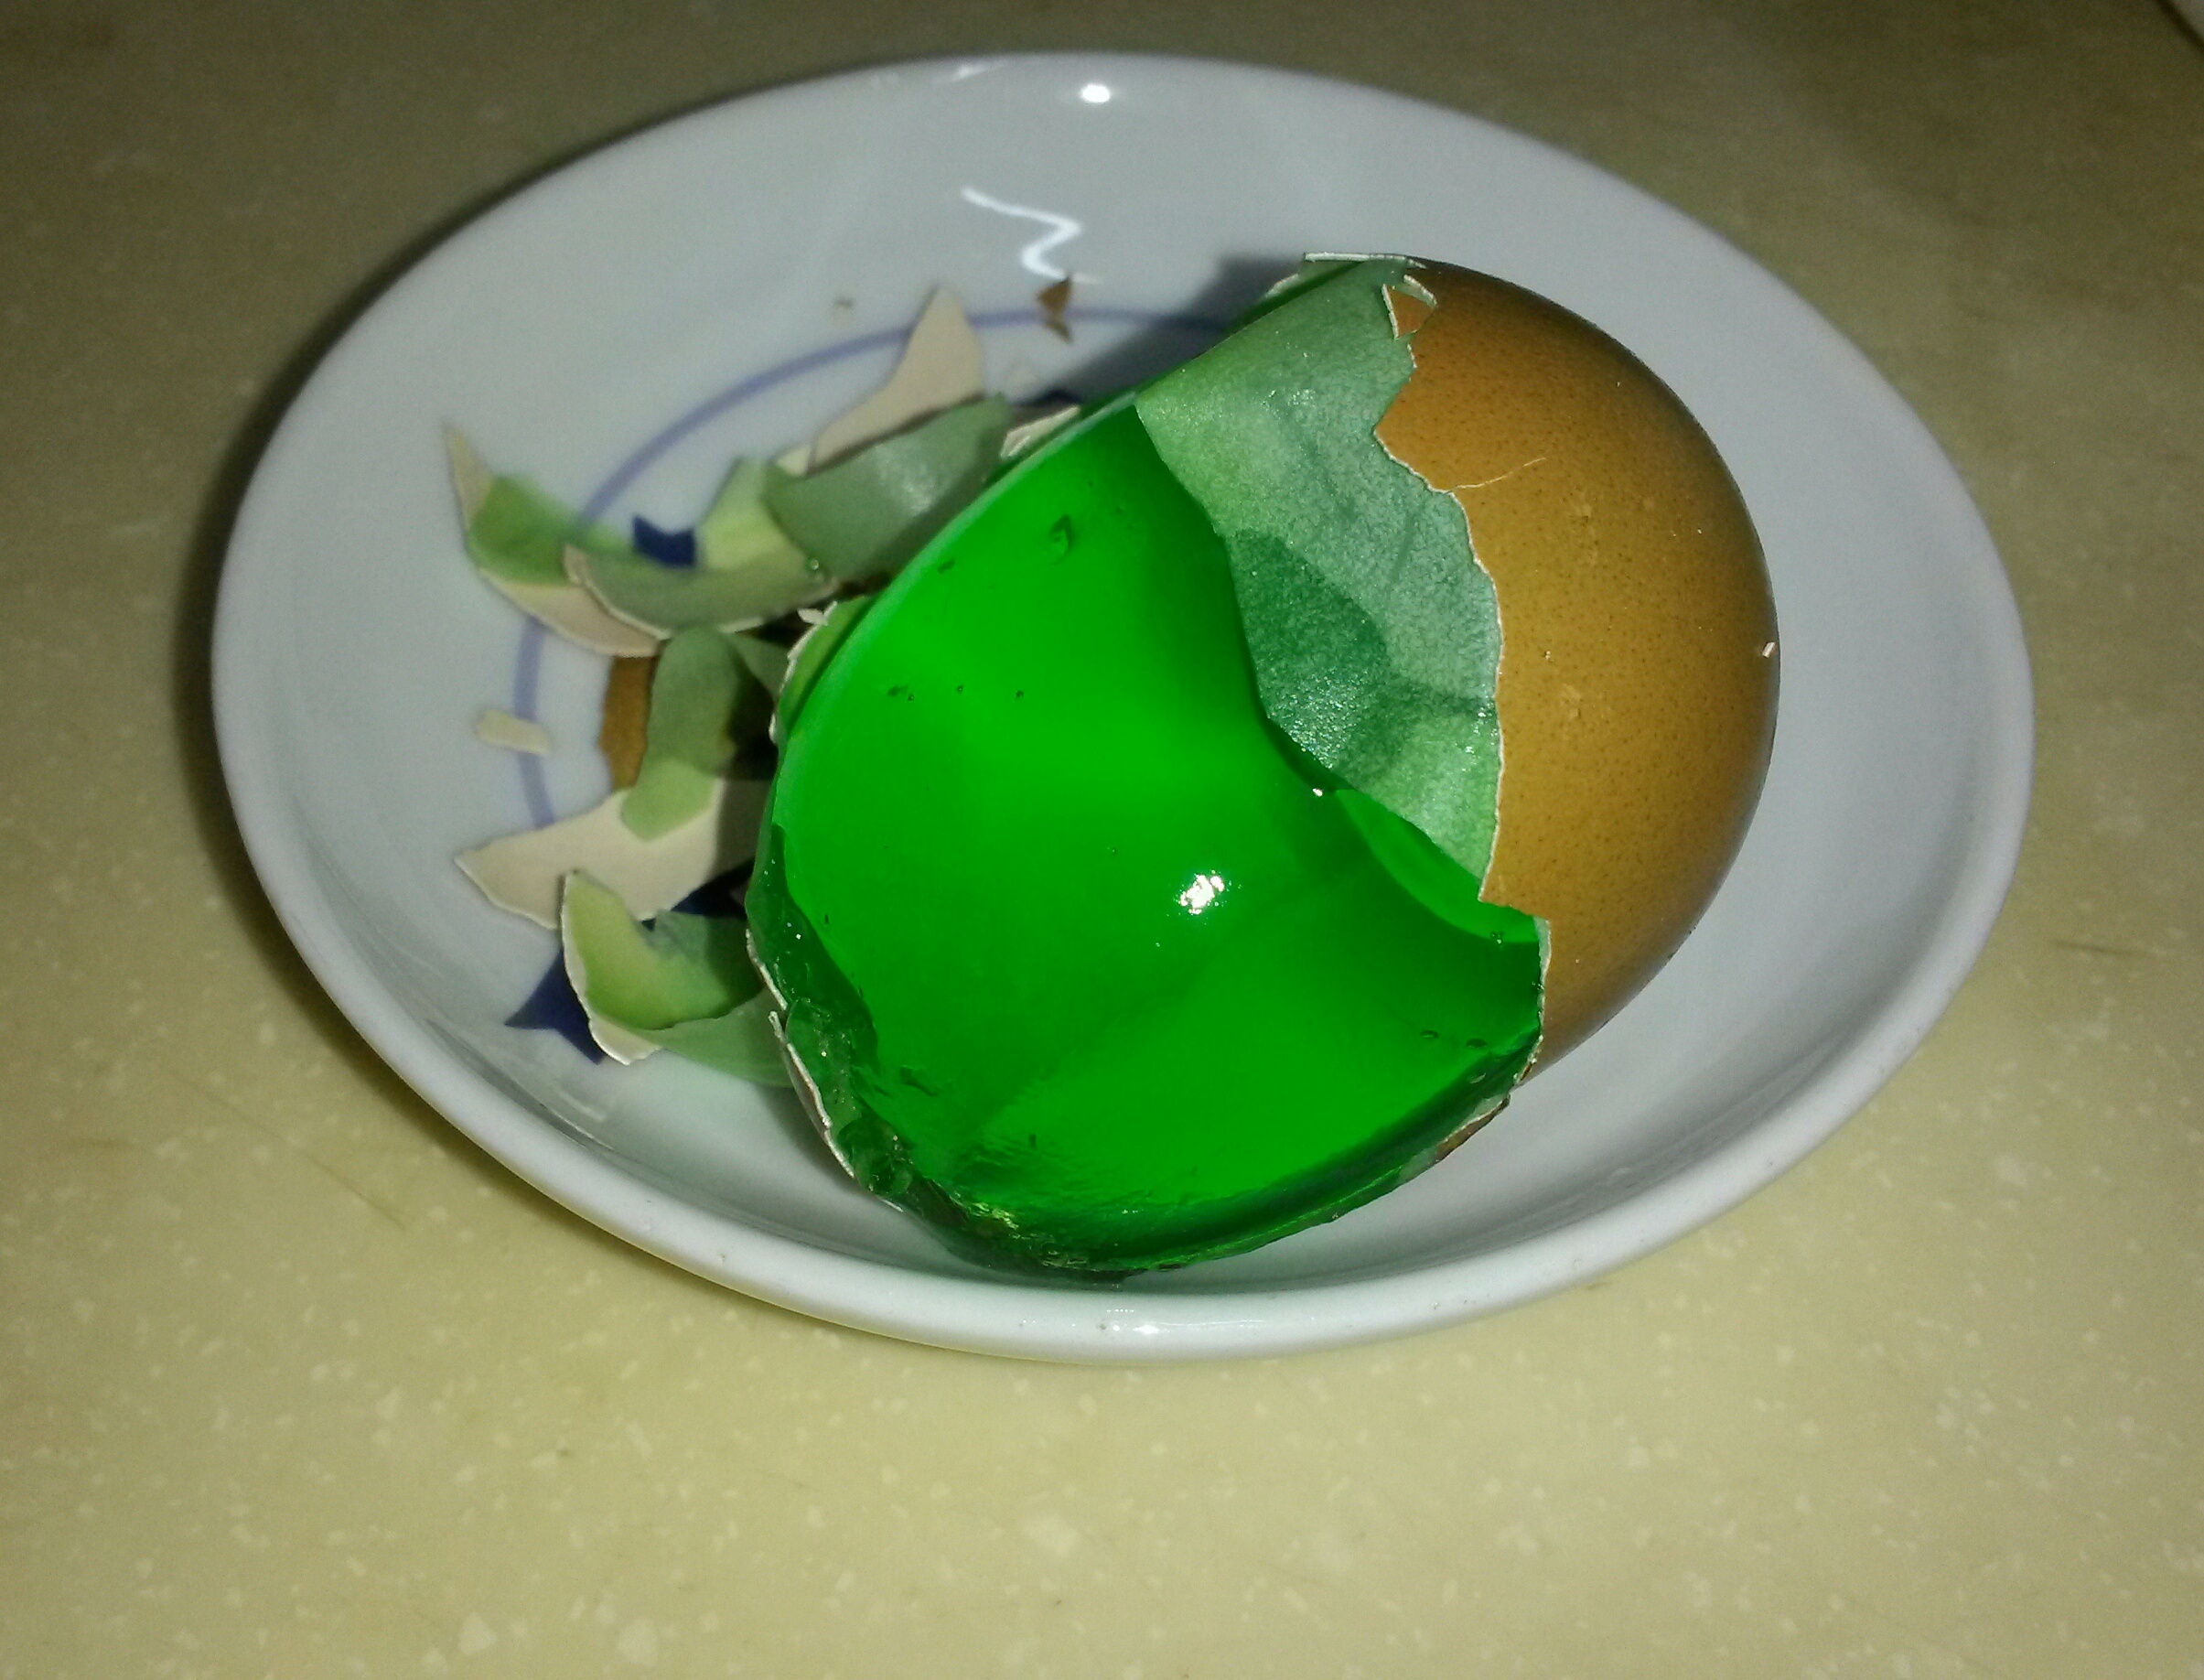 Surprise jelly egg